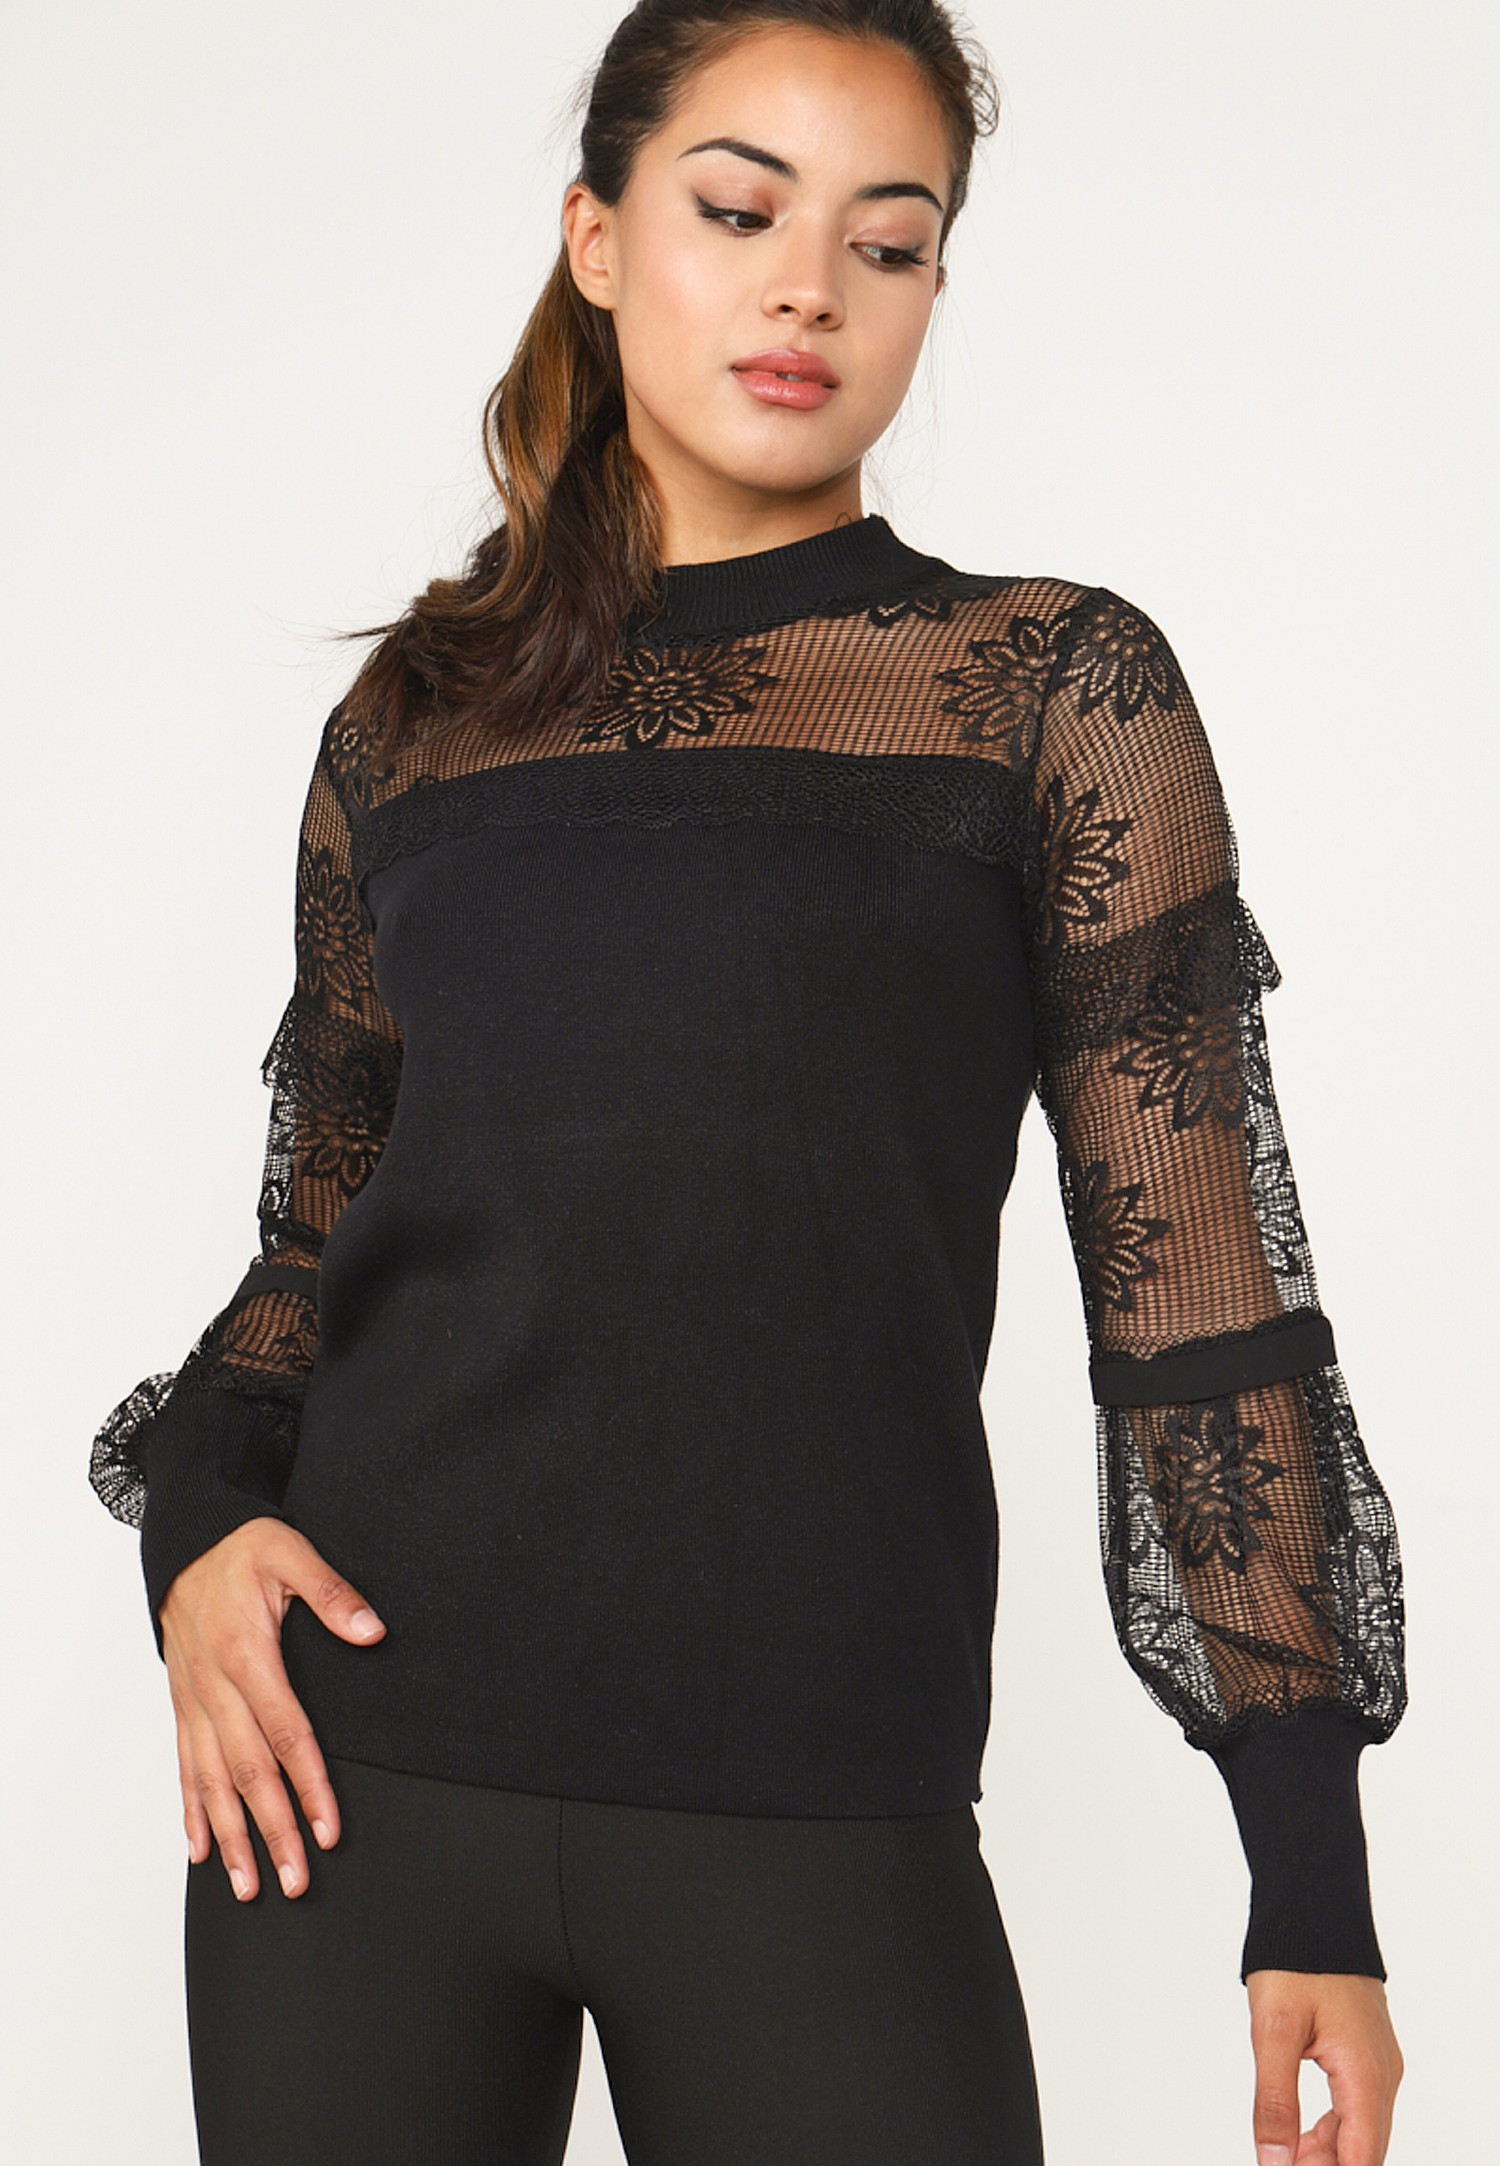 Image of Black Lace Long Sleeved Knit Top Clothing and Accessories - Clothing female ANGELEYE Collection 5055452052478